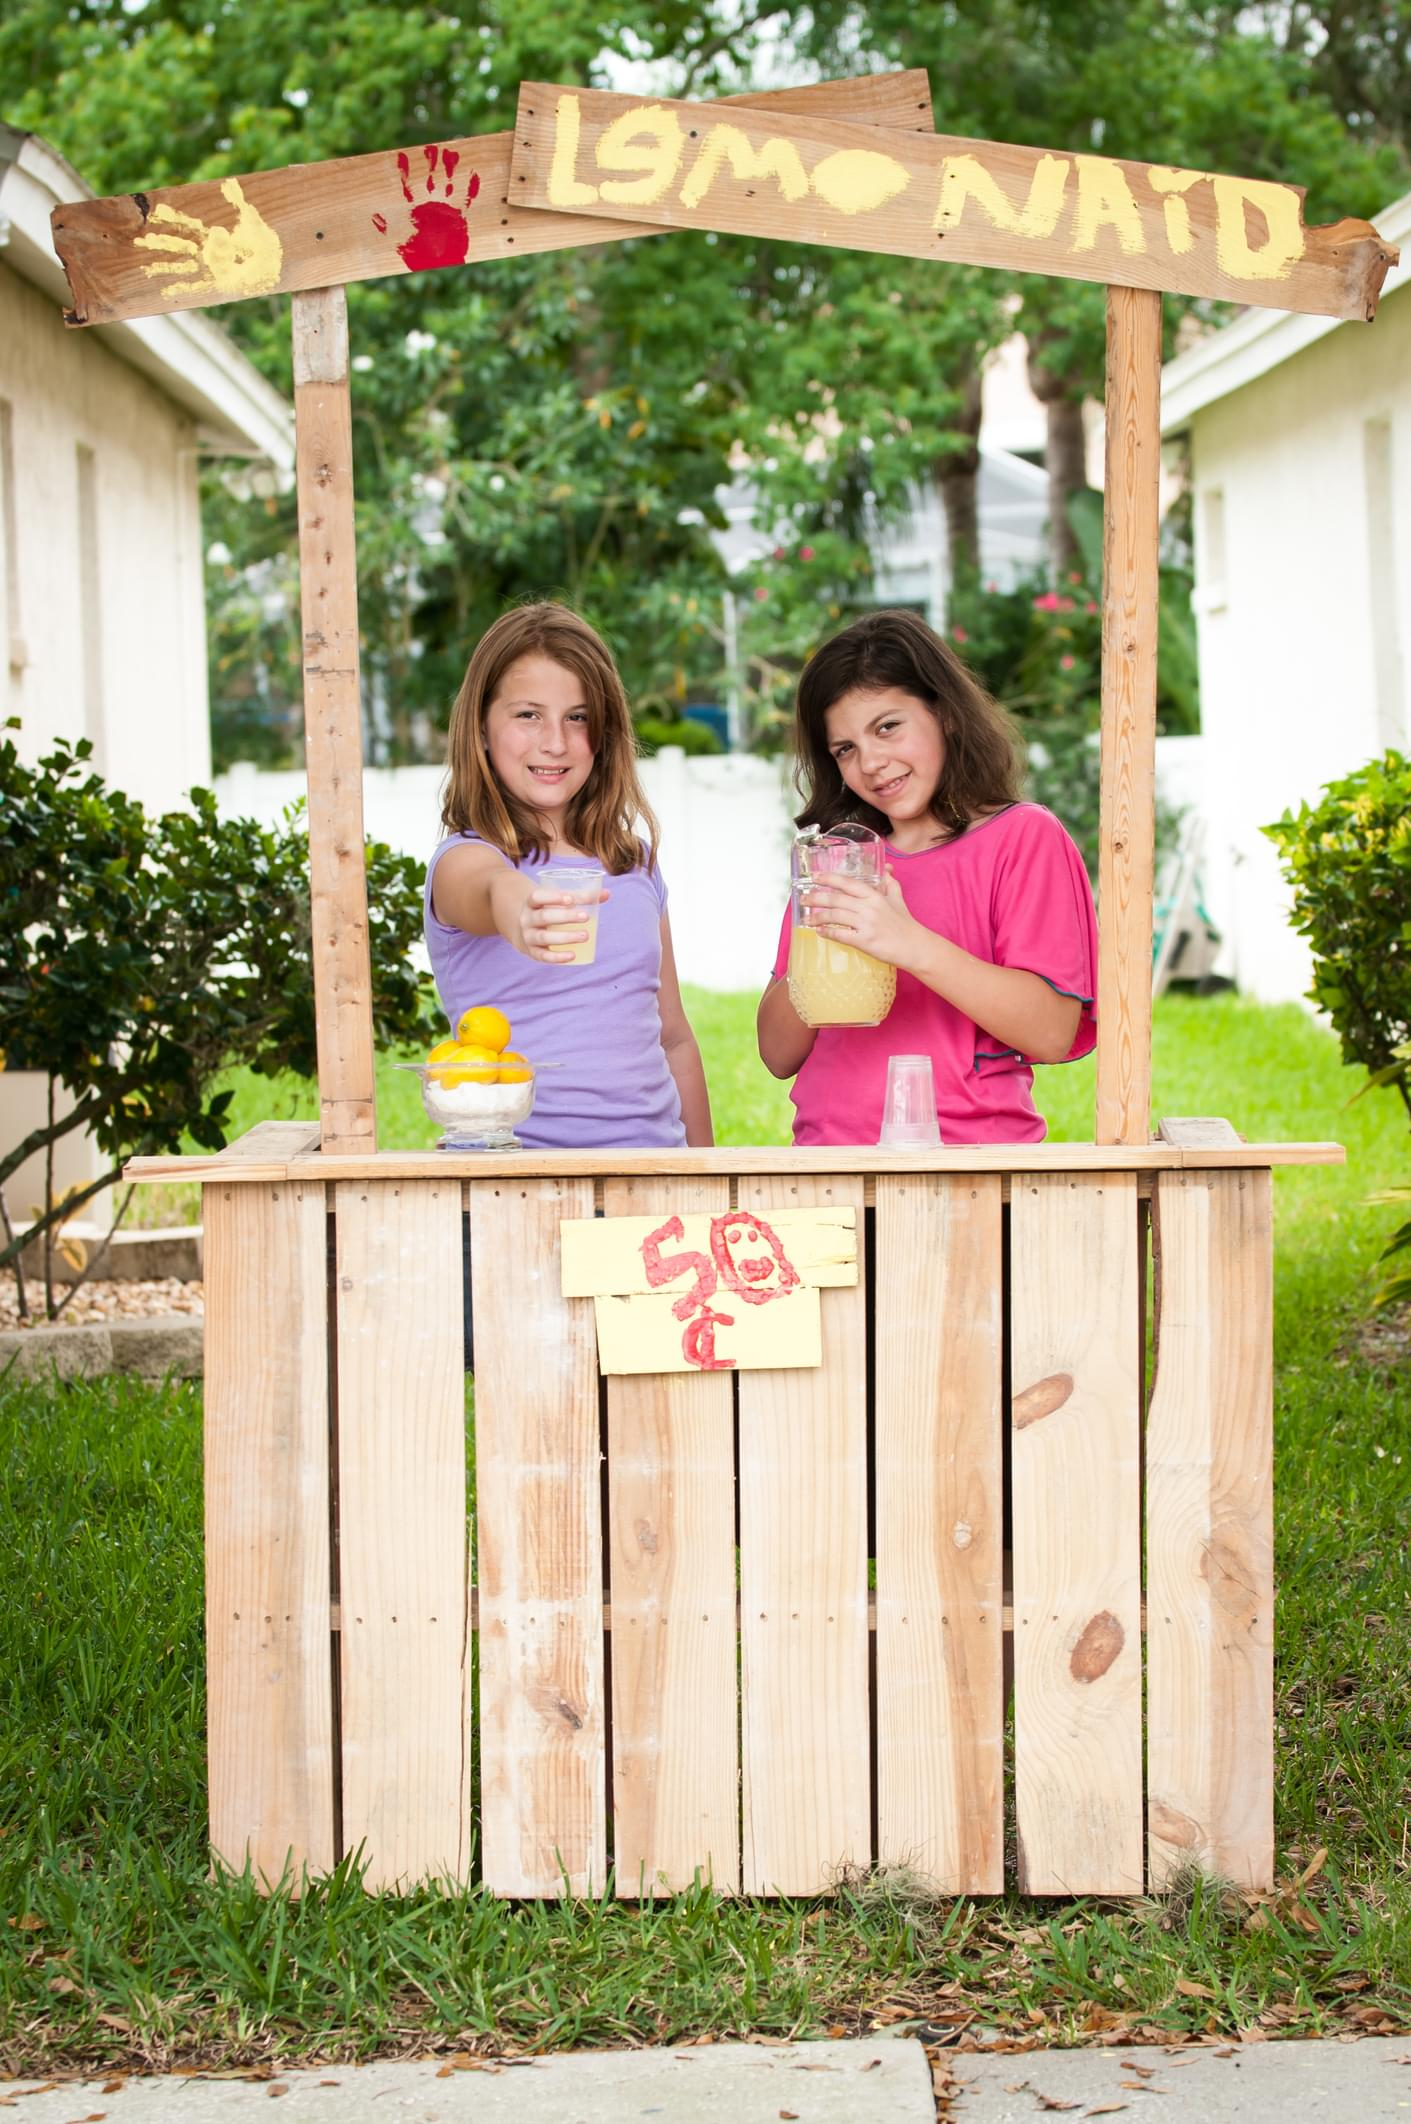 Young girls selling lemonade